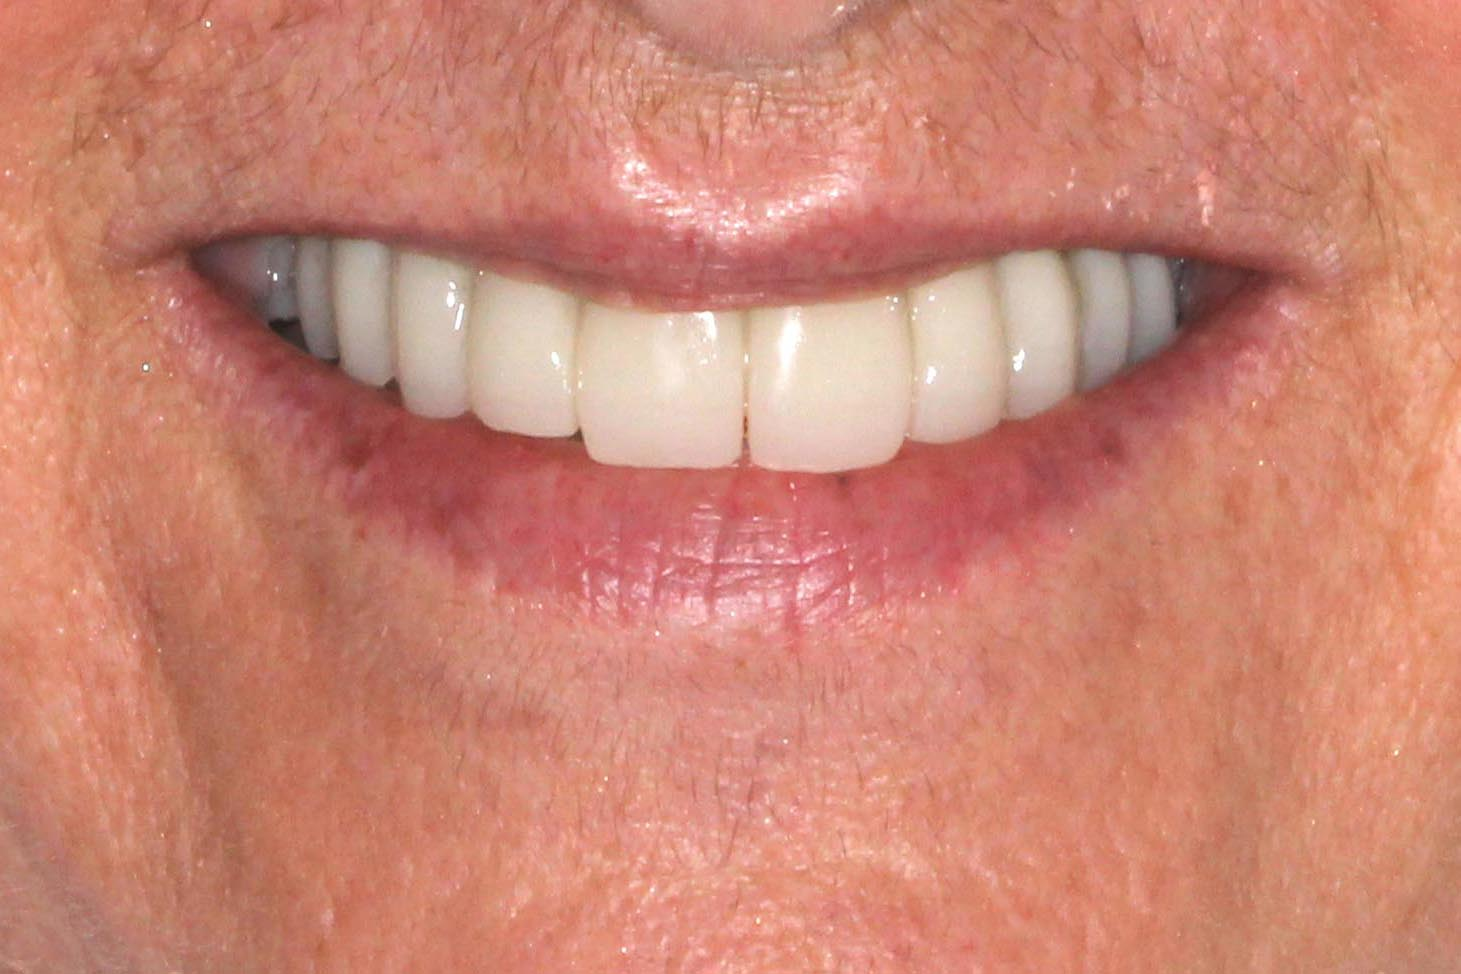 A full mouth rehabilitation after